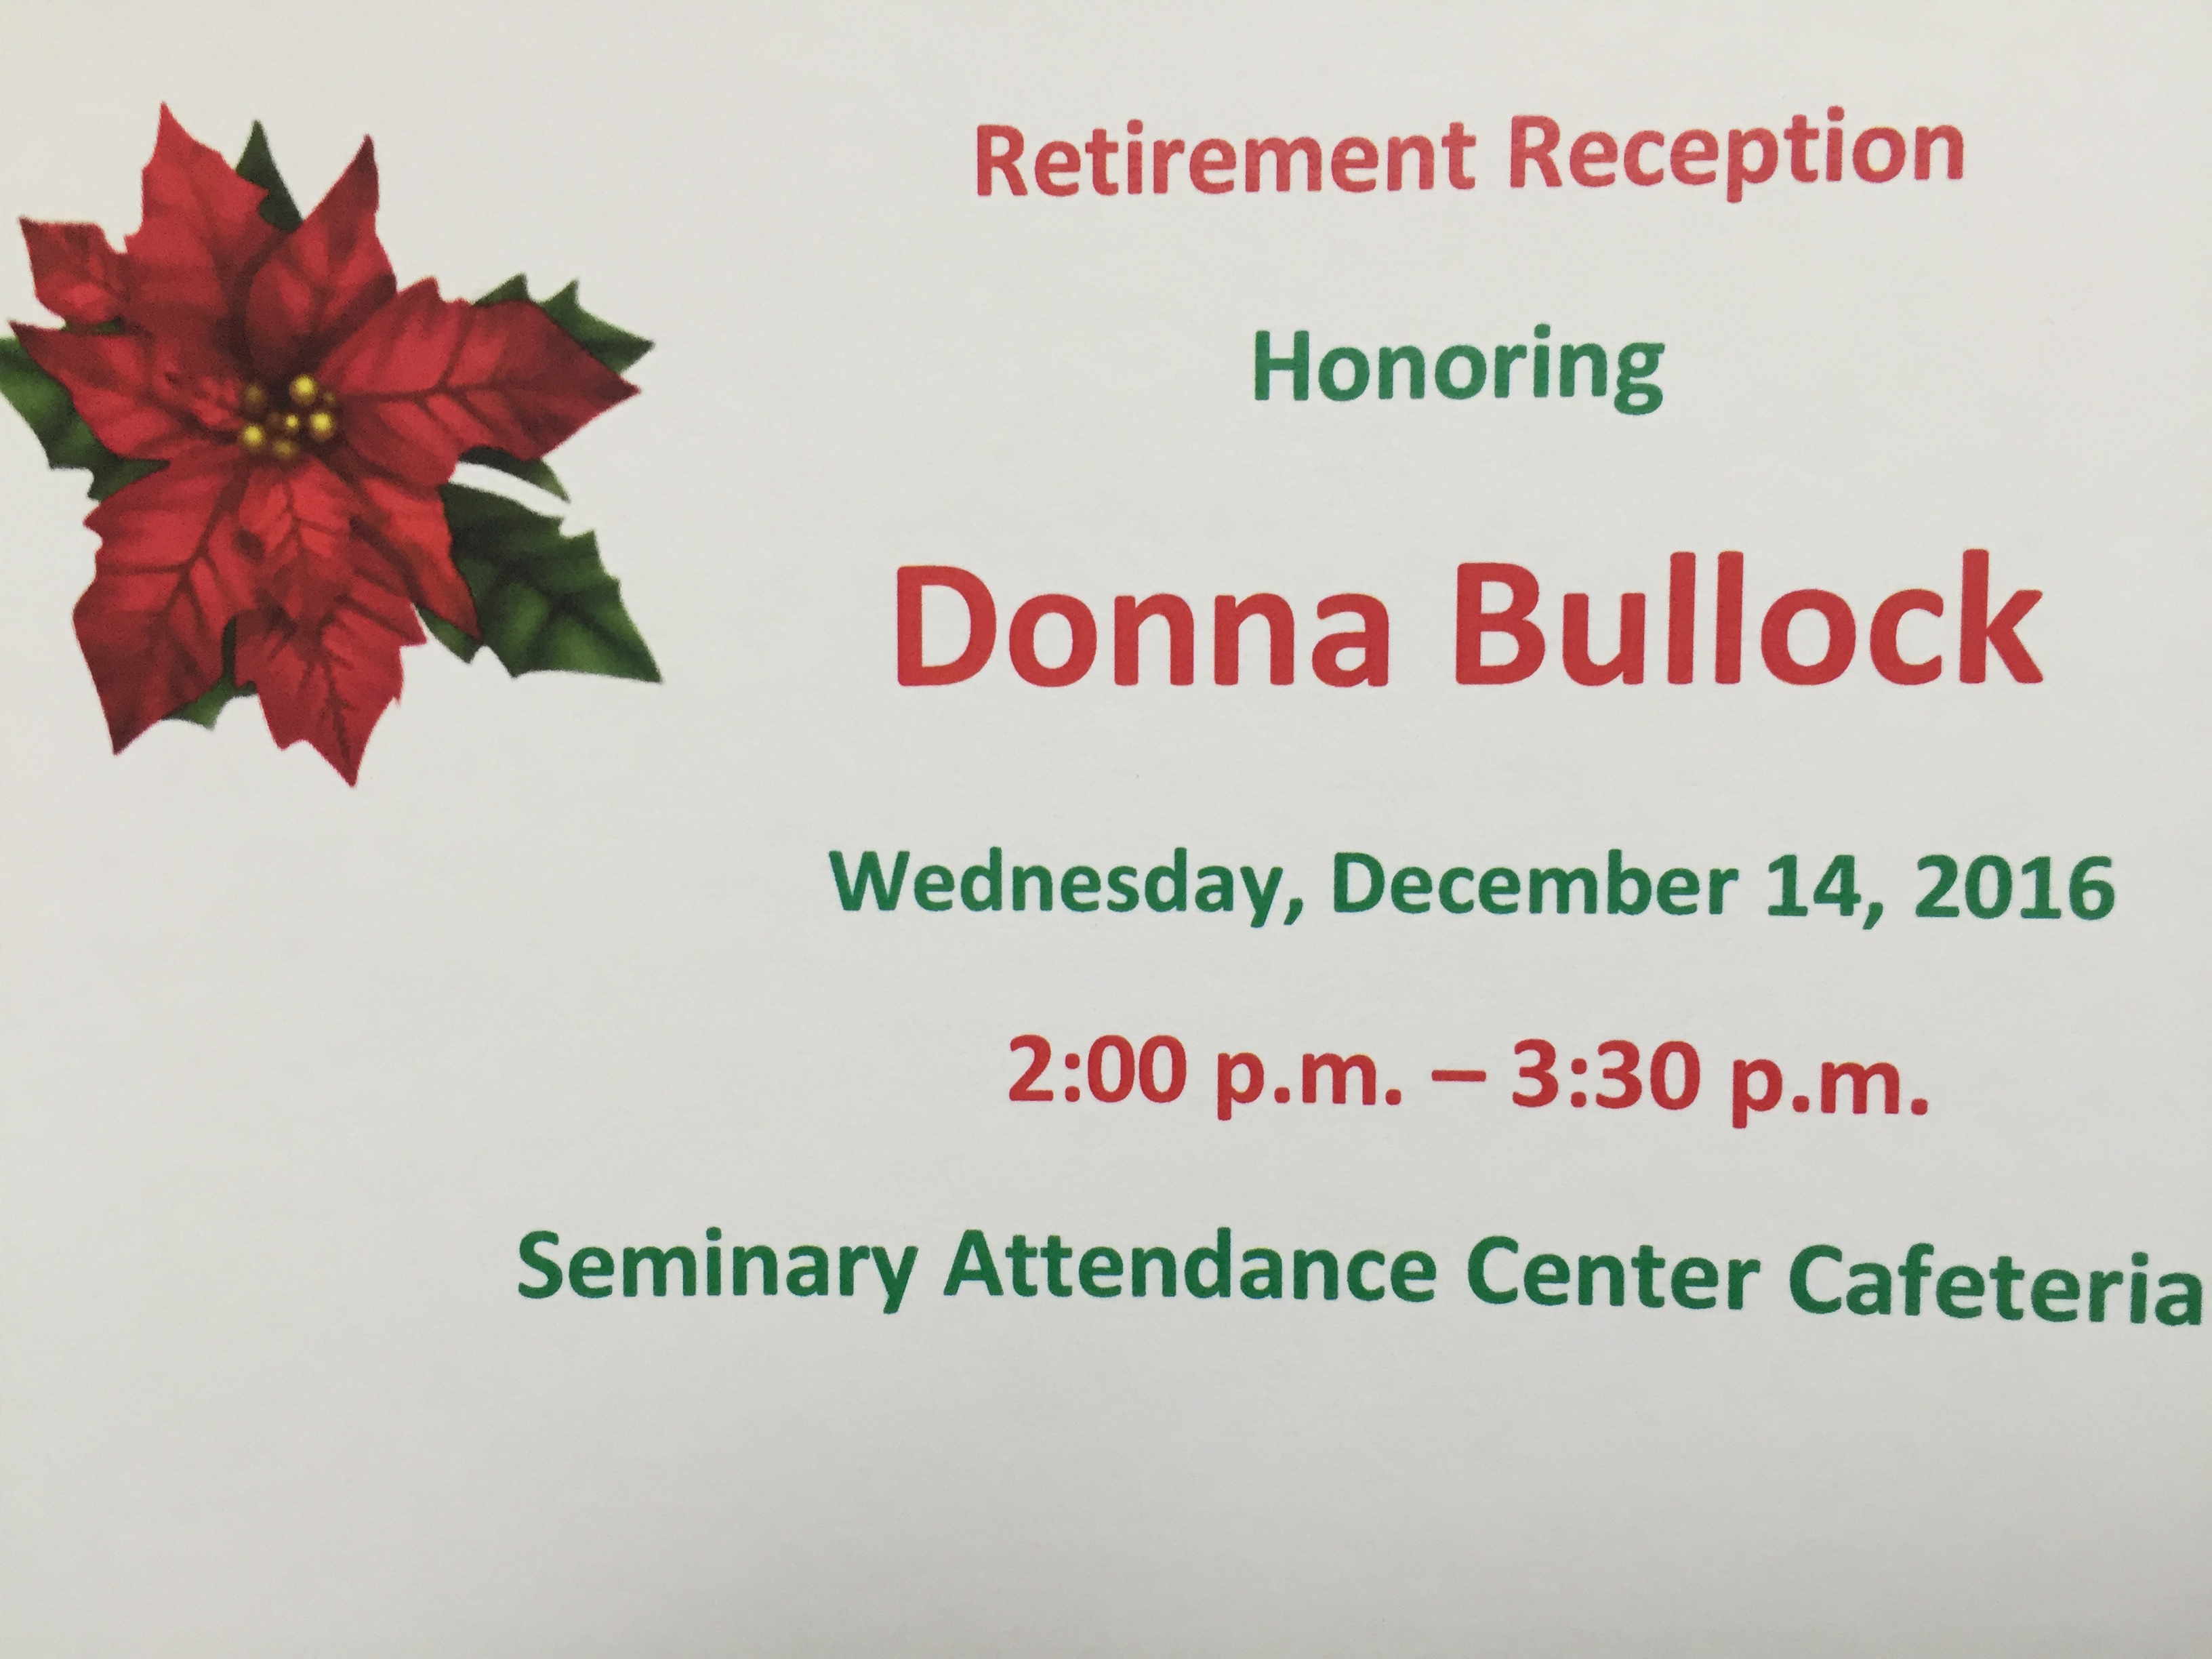 Retirement Reception for Donna Bullock